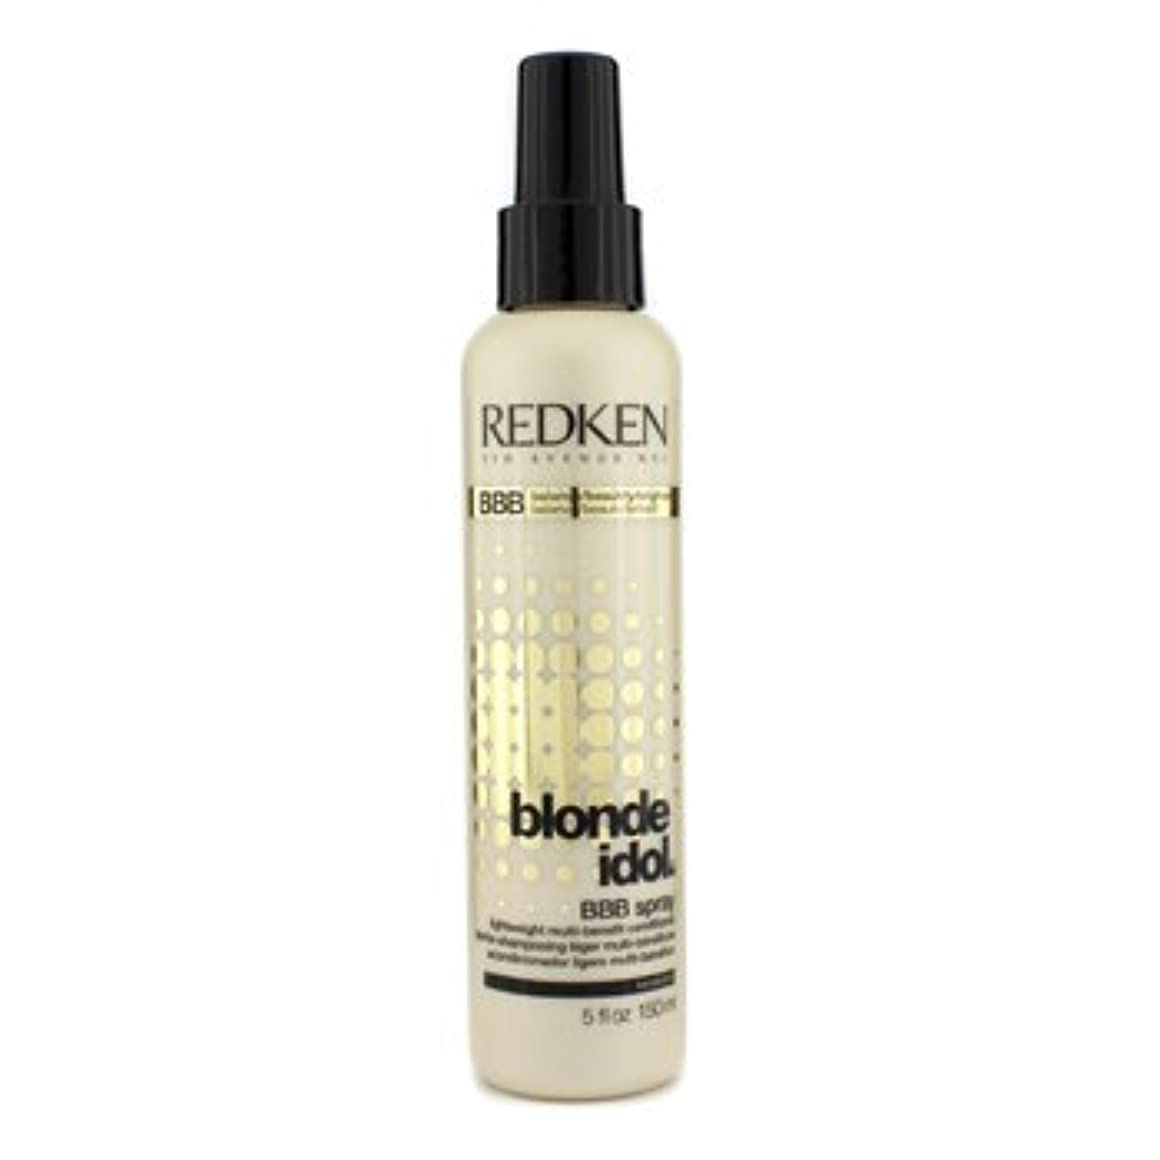 業界ホームレスクック[Redken] Blonde Idol BBB Spray Lightweight Multi-Benefit Conditioner (For Beautiful Blonde Hair) 150ml/5oz